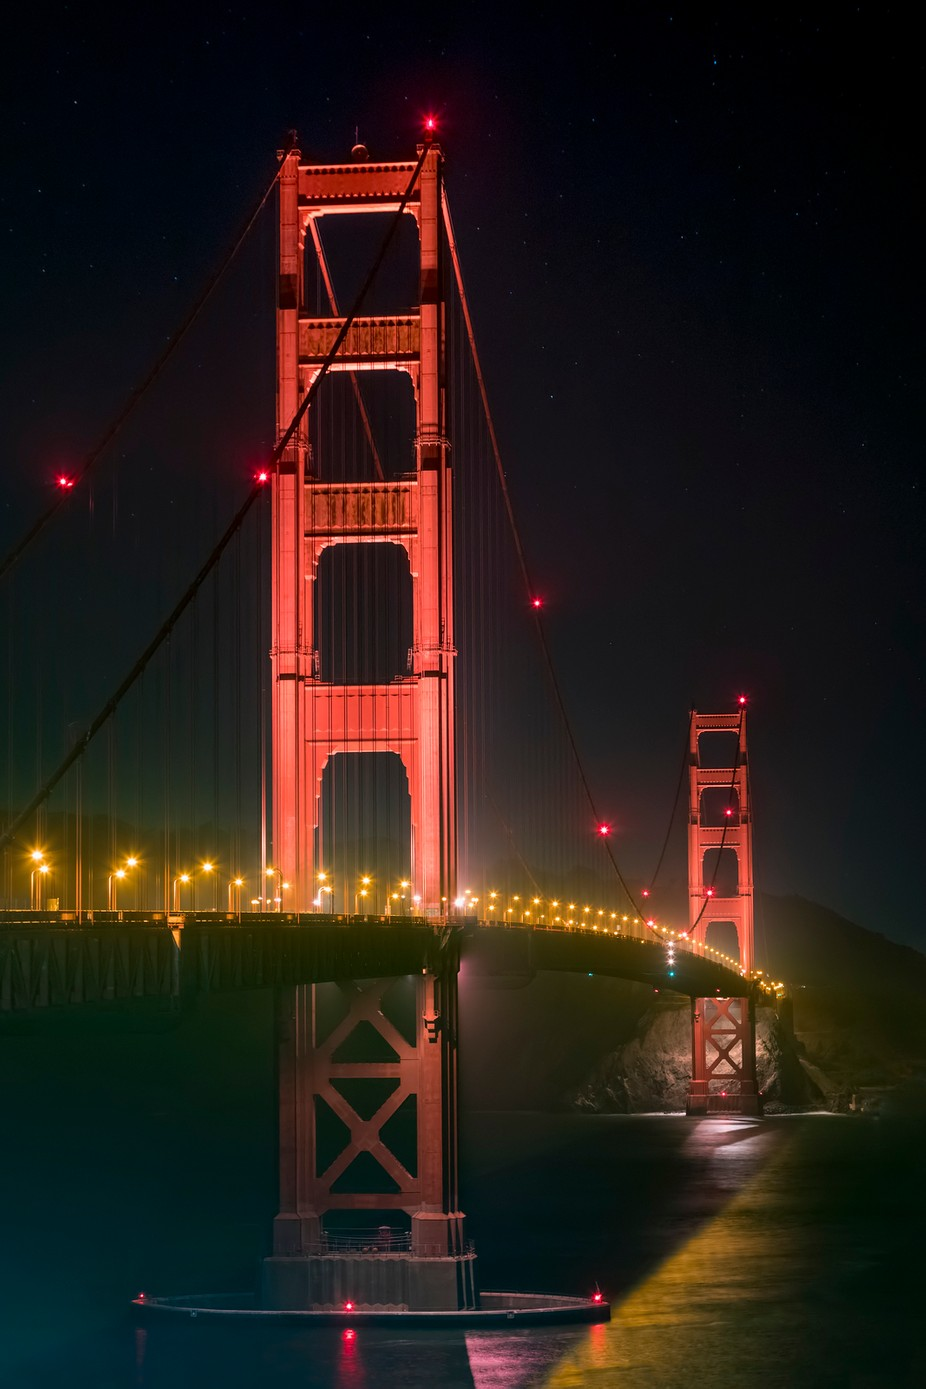 Suspended in Darkness - California's Golden Gate Bridge at Night by KennethKeifer - Night Wonders Photo Contest